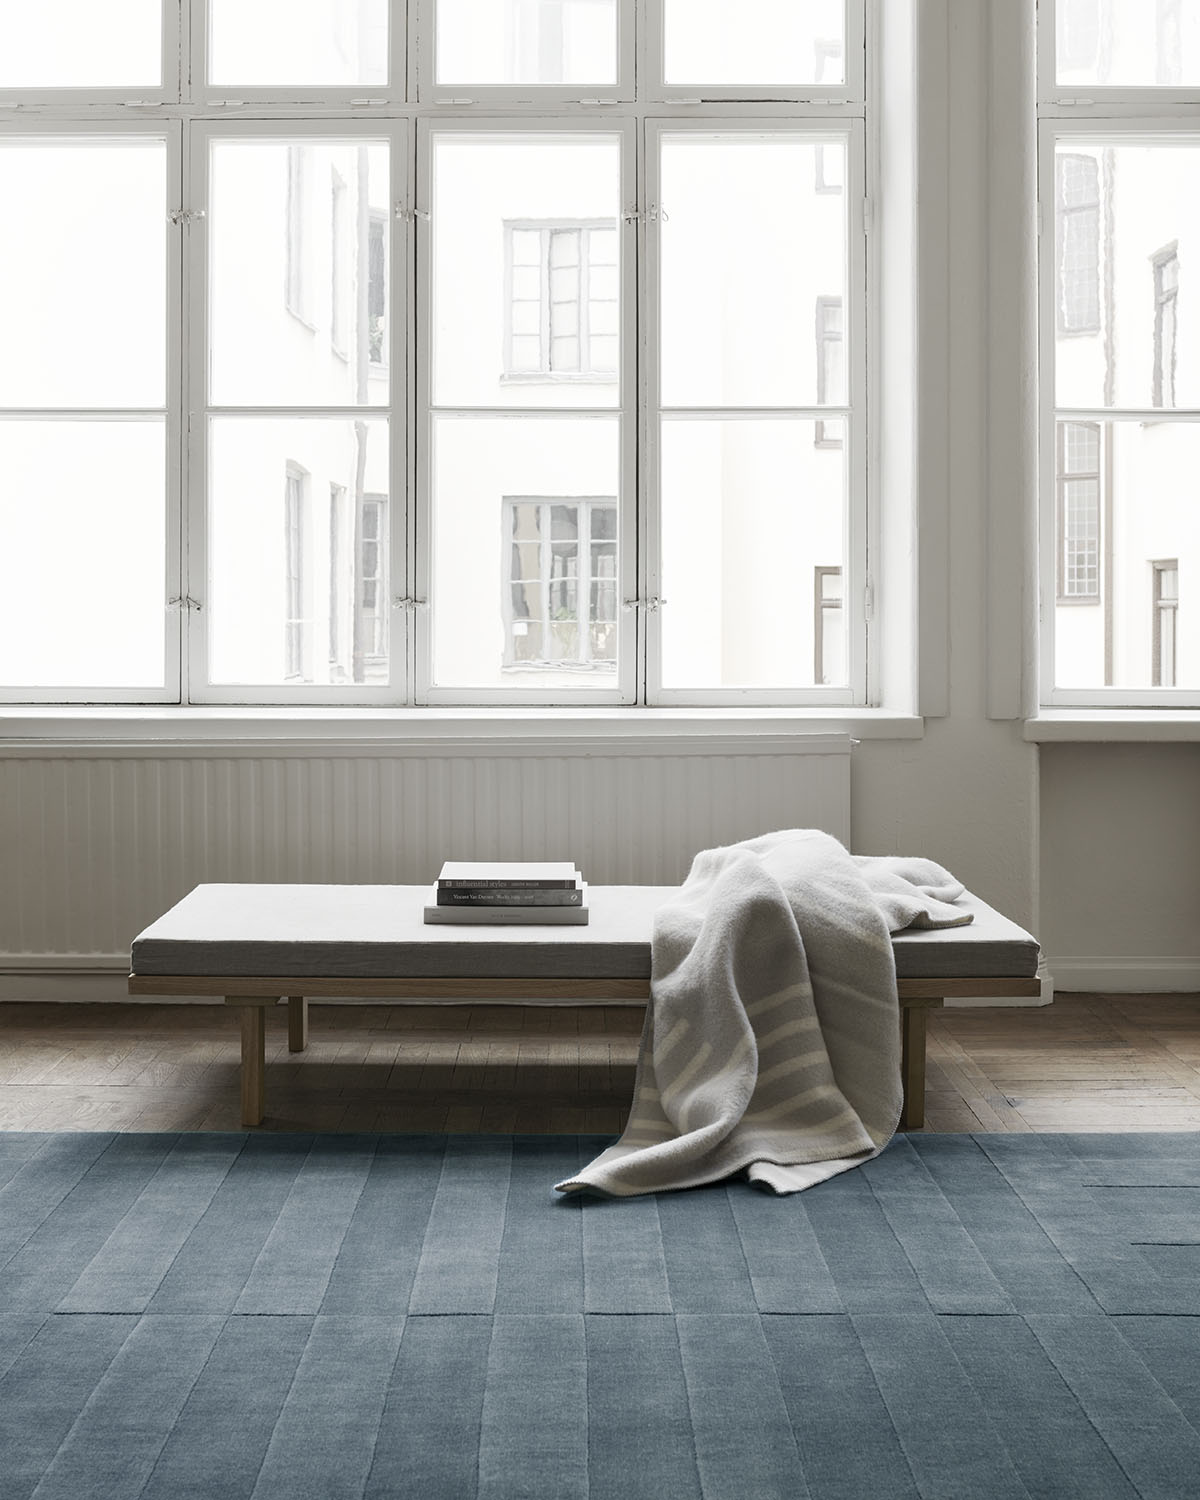 Lux 2 in the color Petroleum displayed in the Nordic Knots atelier.